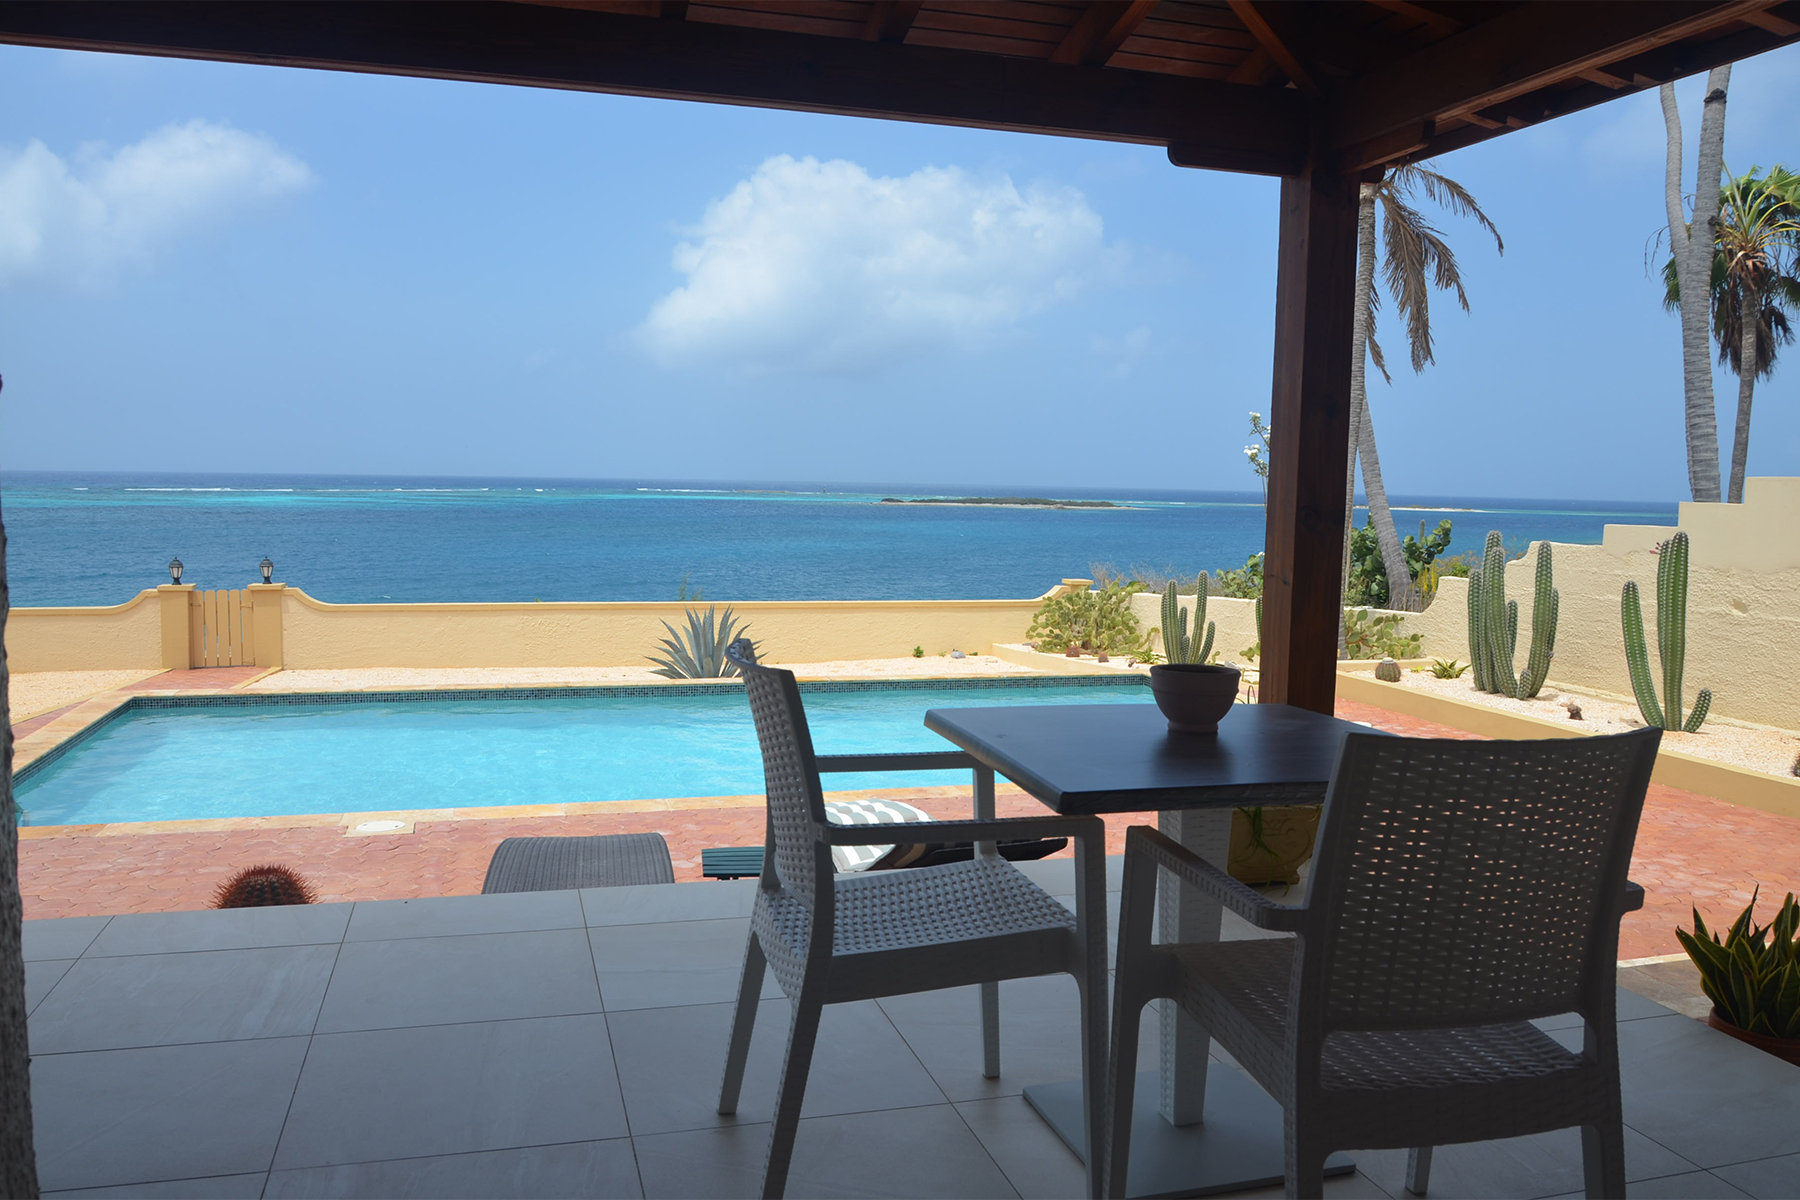 Single Family Home for Sale at Aruba Beach House San Nicolas, Aruba